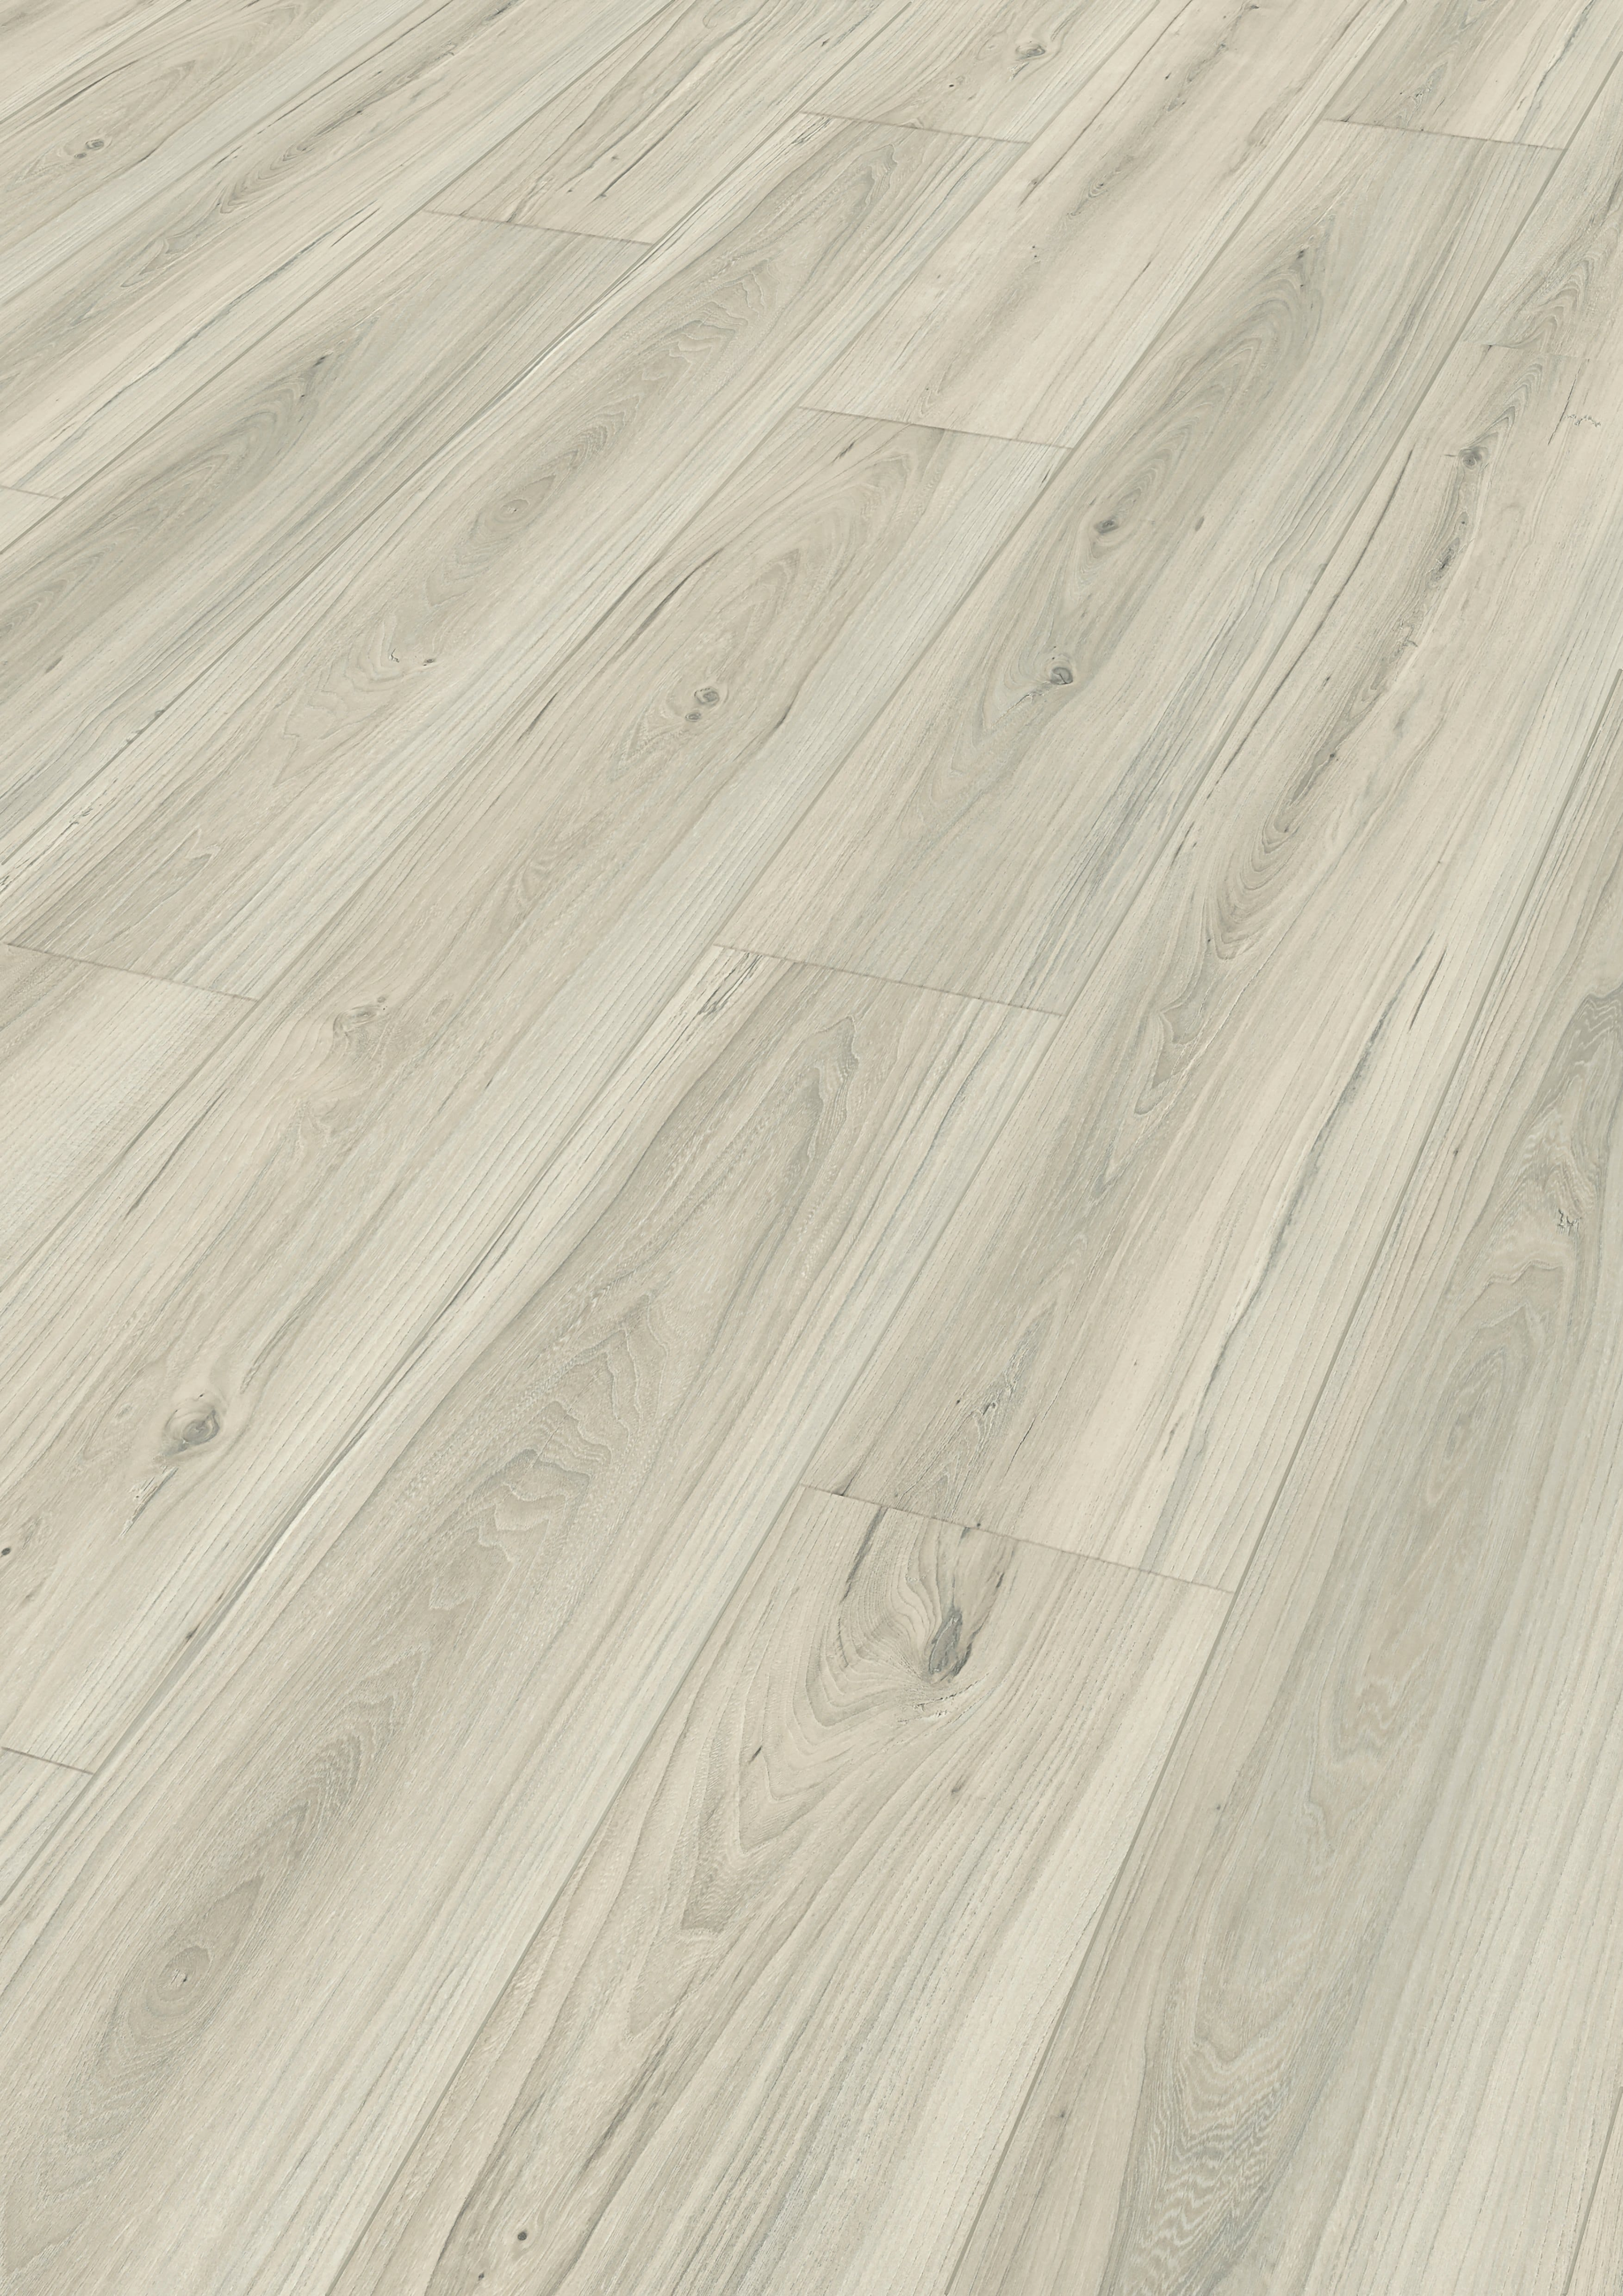 Sea Side L6417 | Raw Wood Pore Structure | Wood Effect